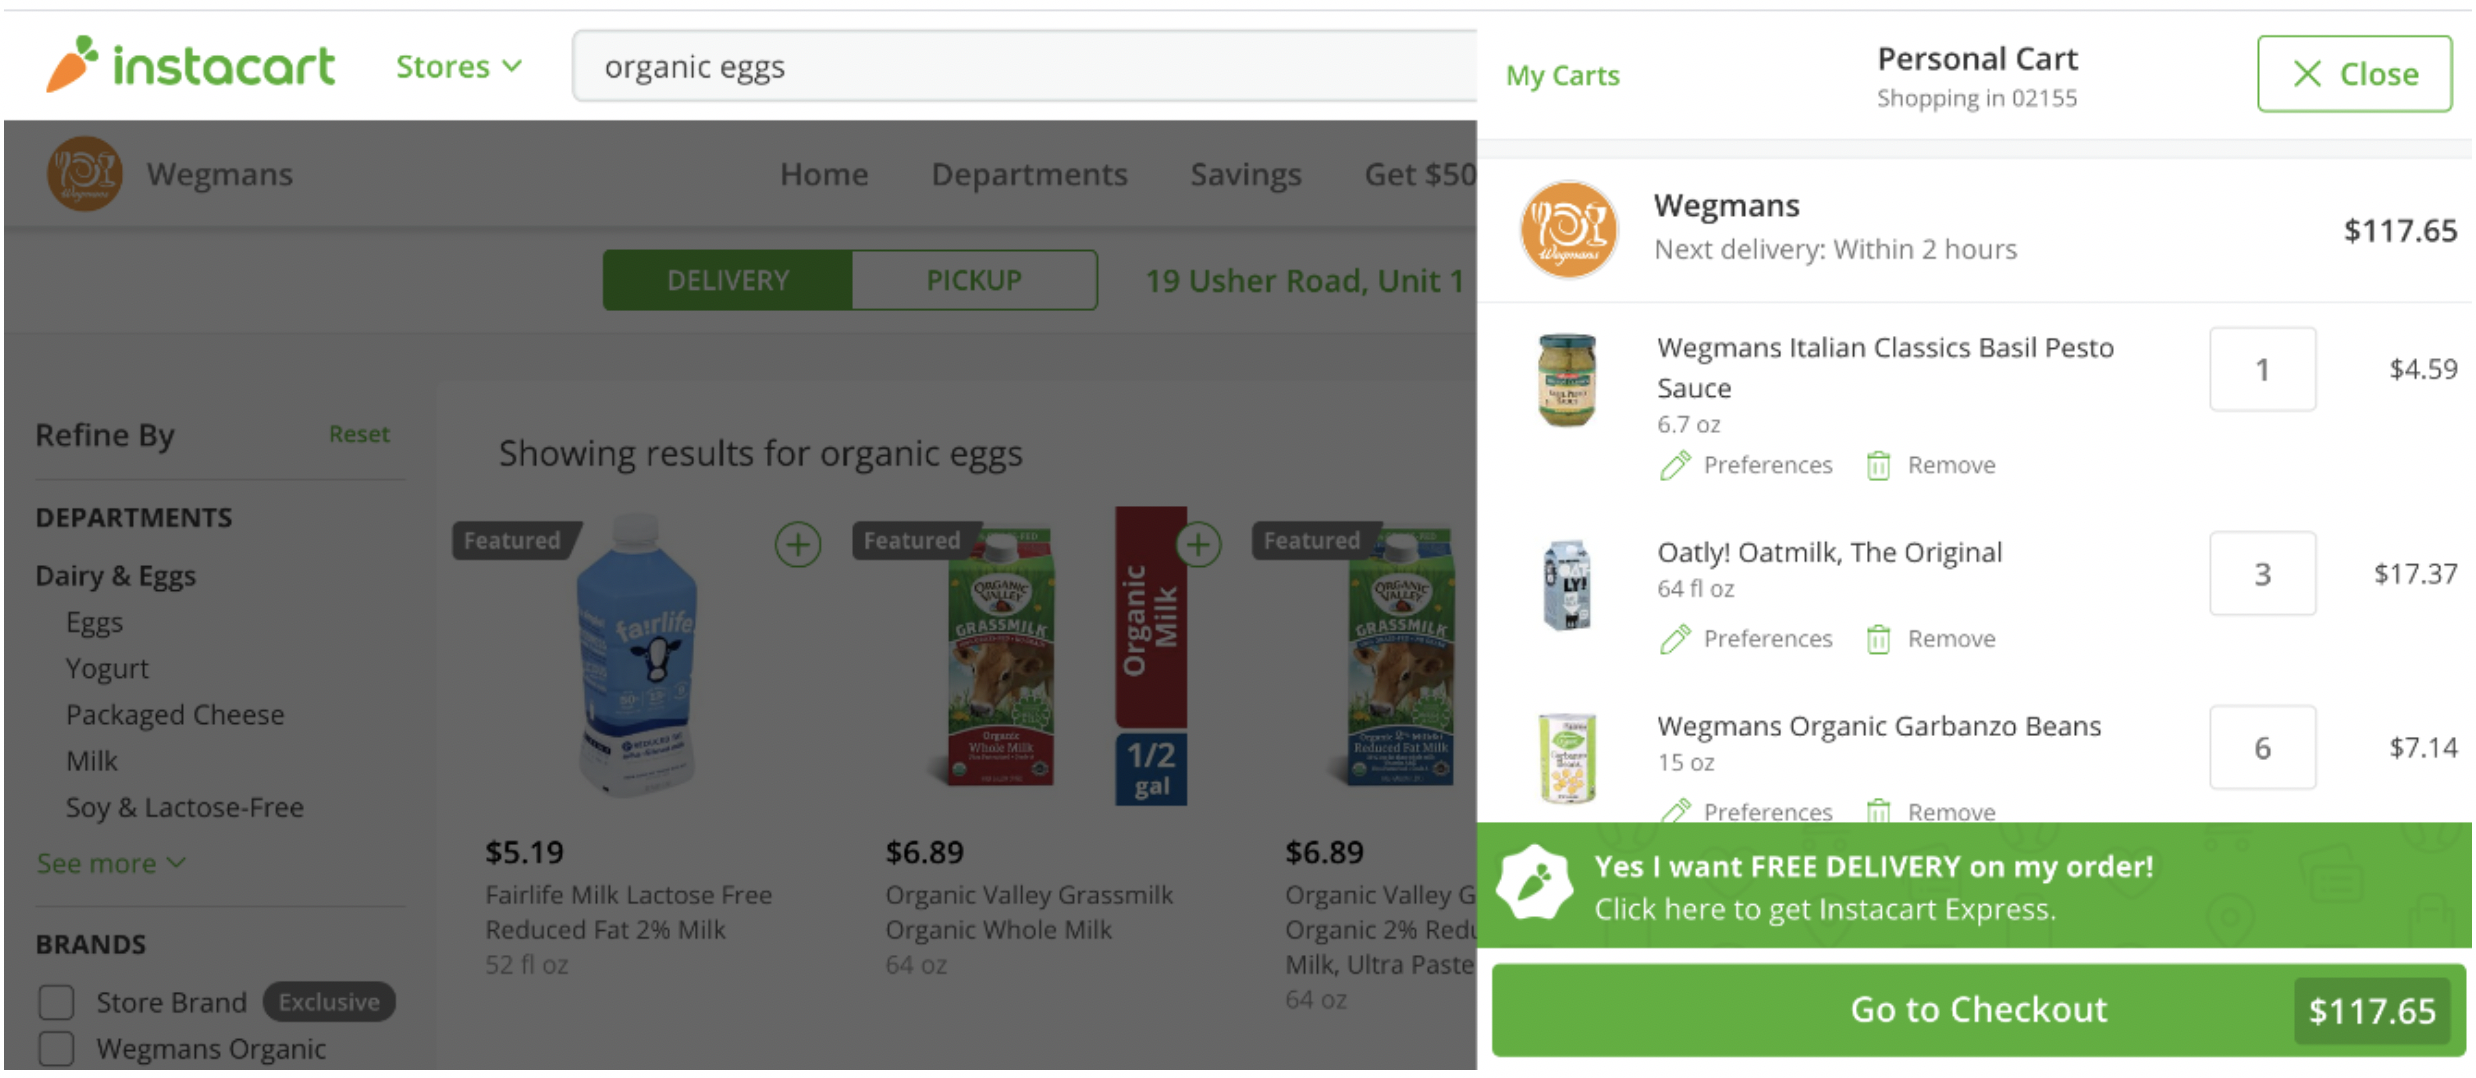 Covid19 Grocery Store Design - instacart shopping screenshot